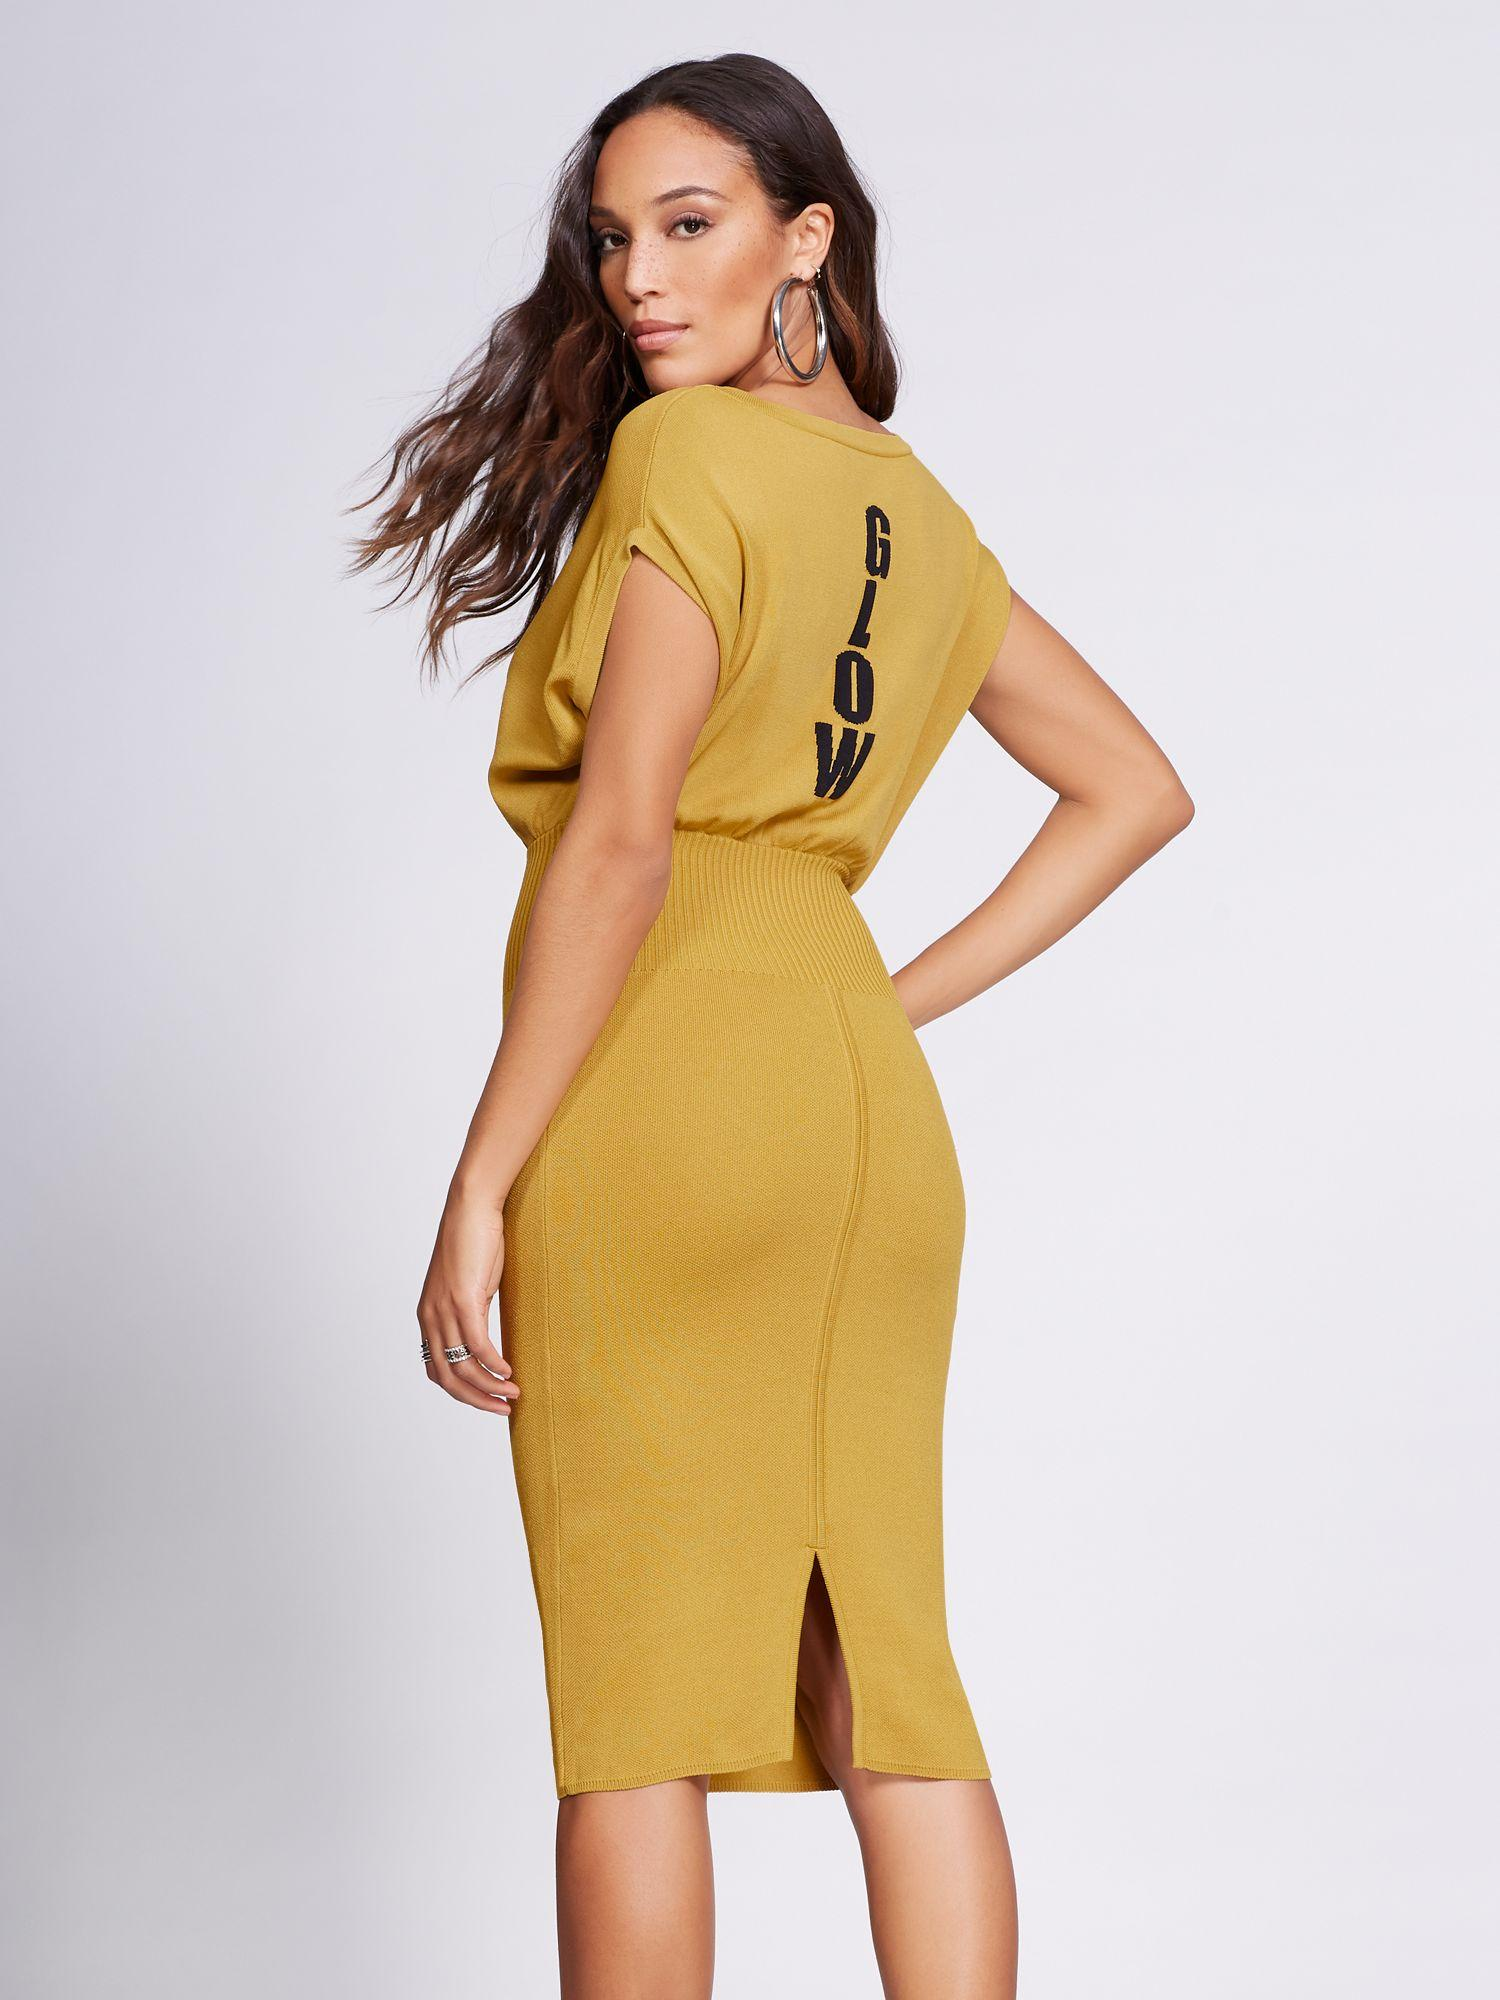 61839848ca New York   Company. Women s Yellow Gabrielle Union Collection -